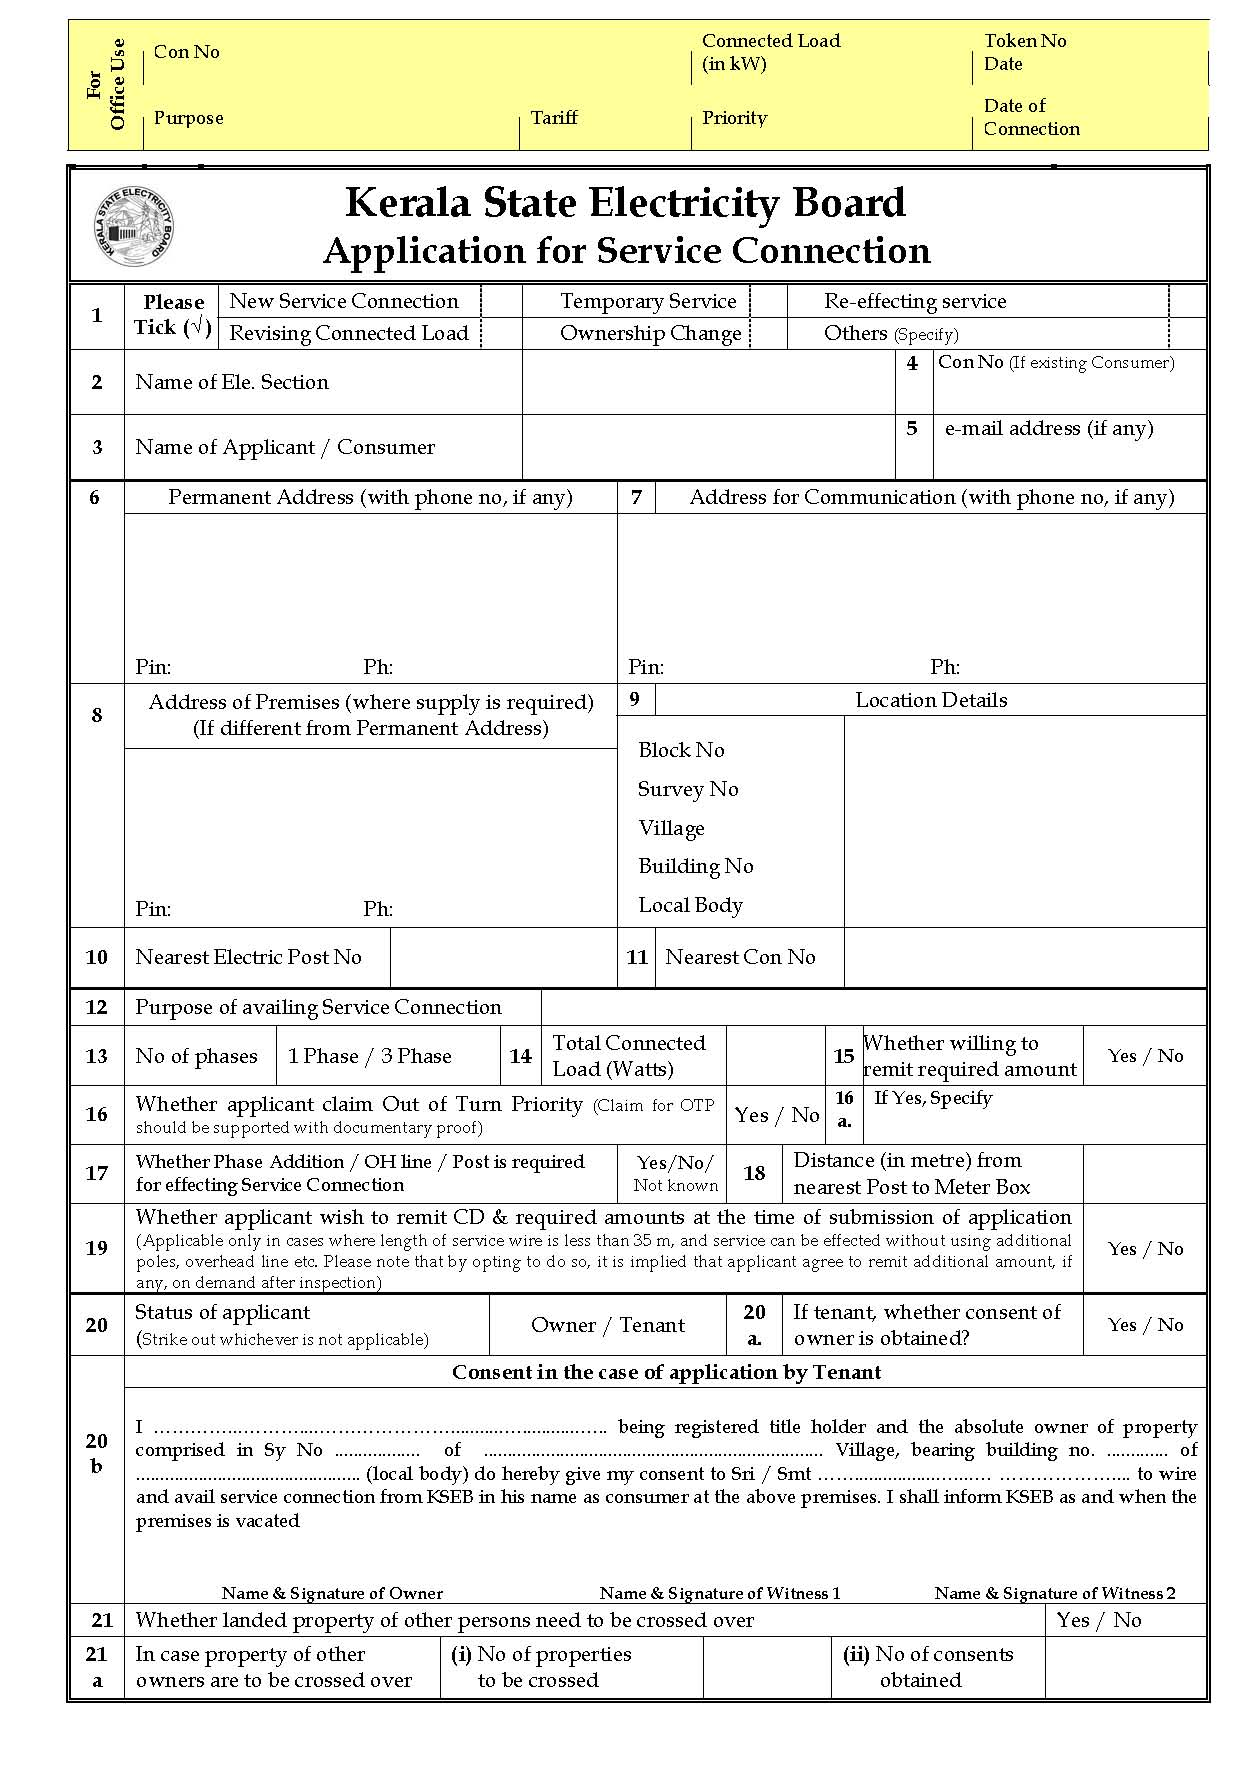 kseb ownership transfer application form eduvark as you want i am here giving you images of application form of kerala state electricity board kseb ownership transfer